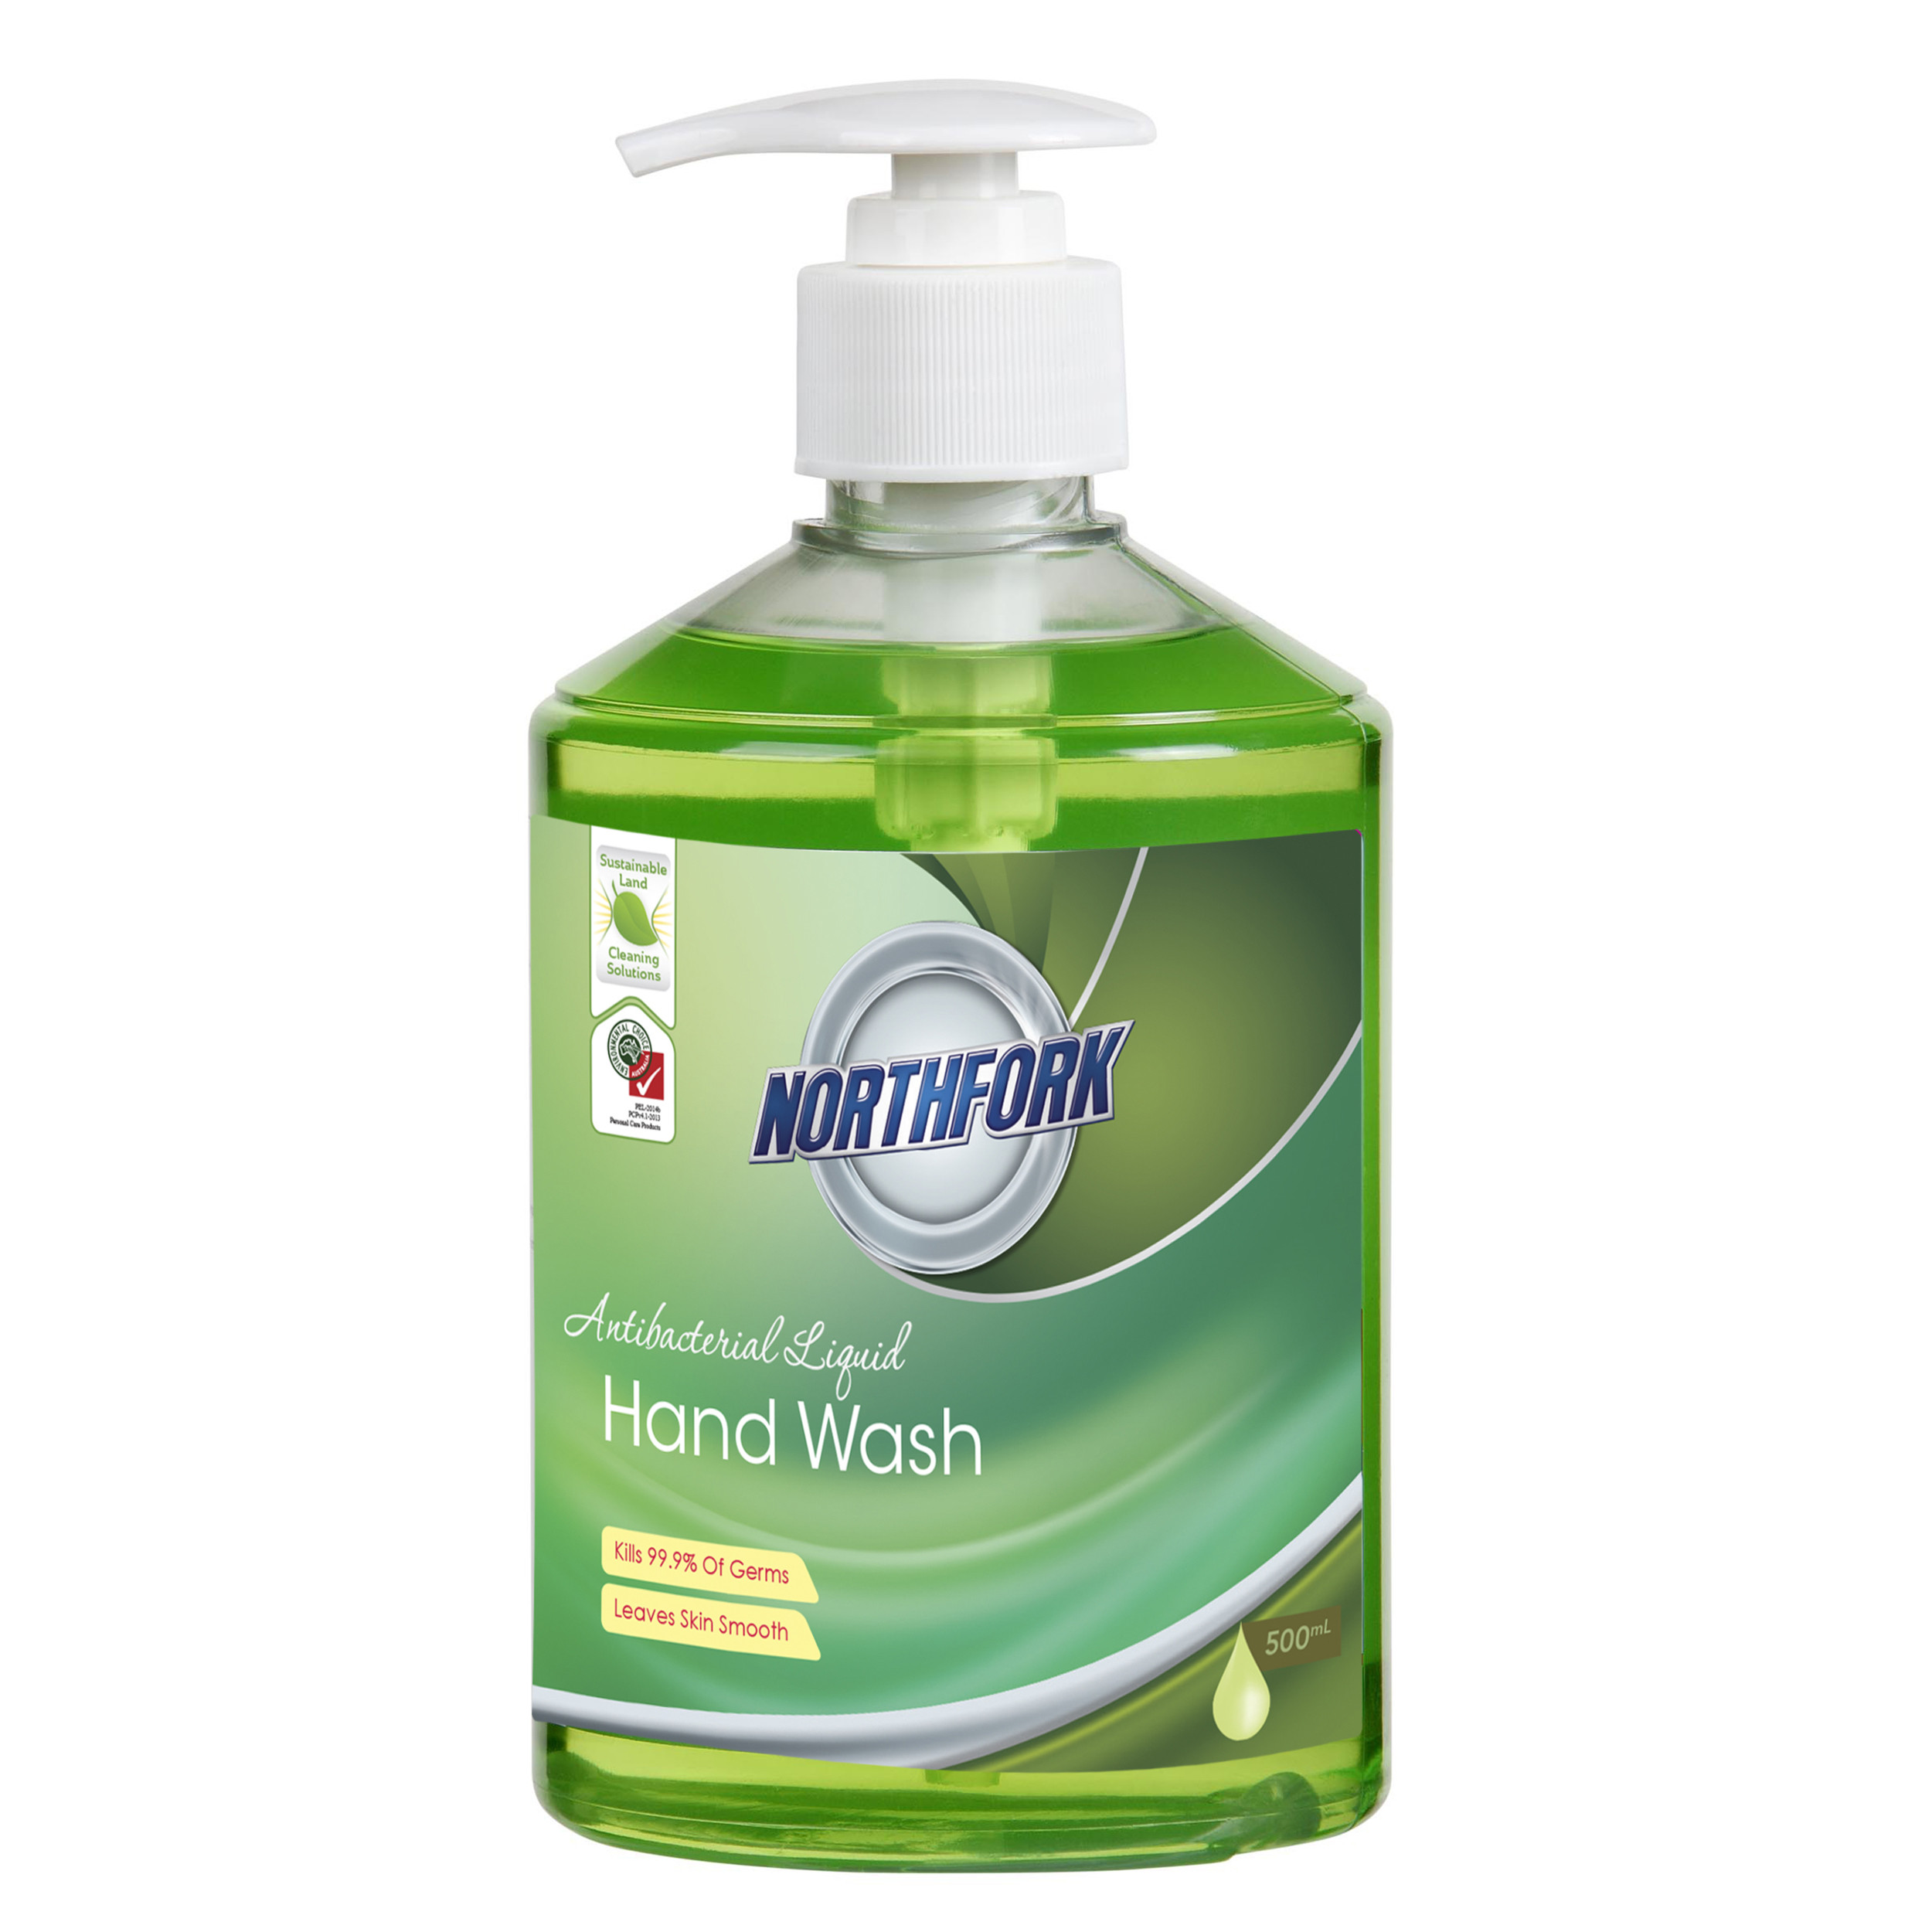 Northfork GECA Liquid Hand Wash Antibacterial